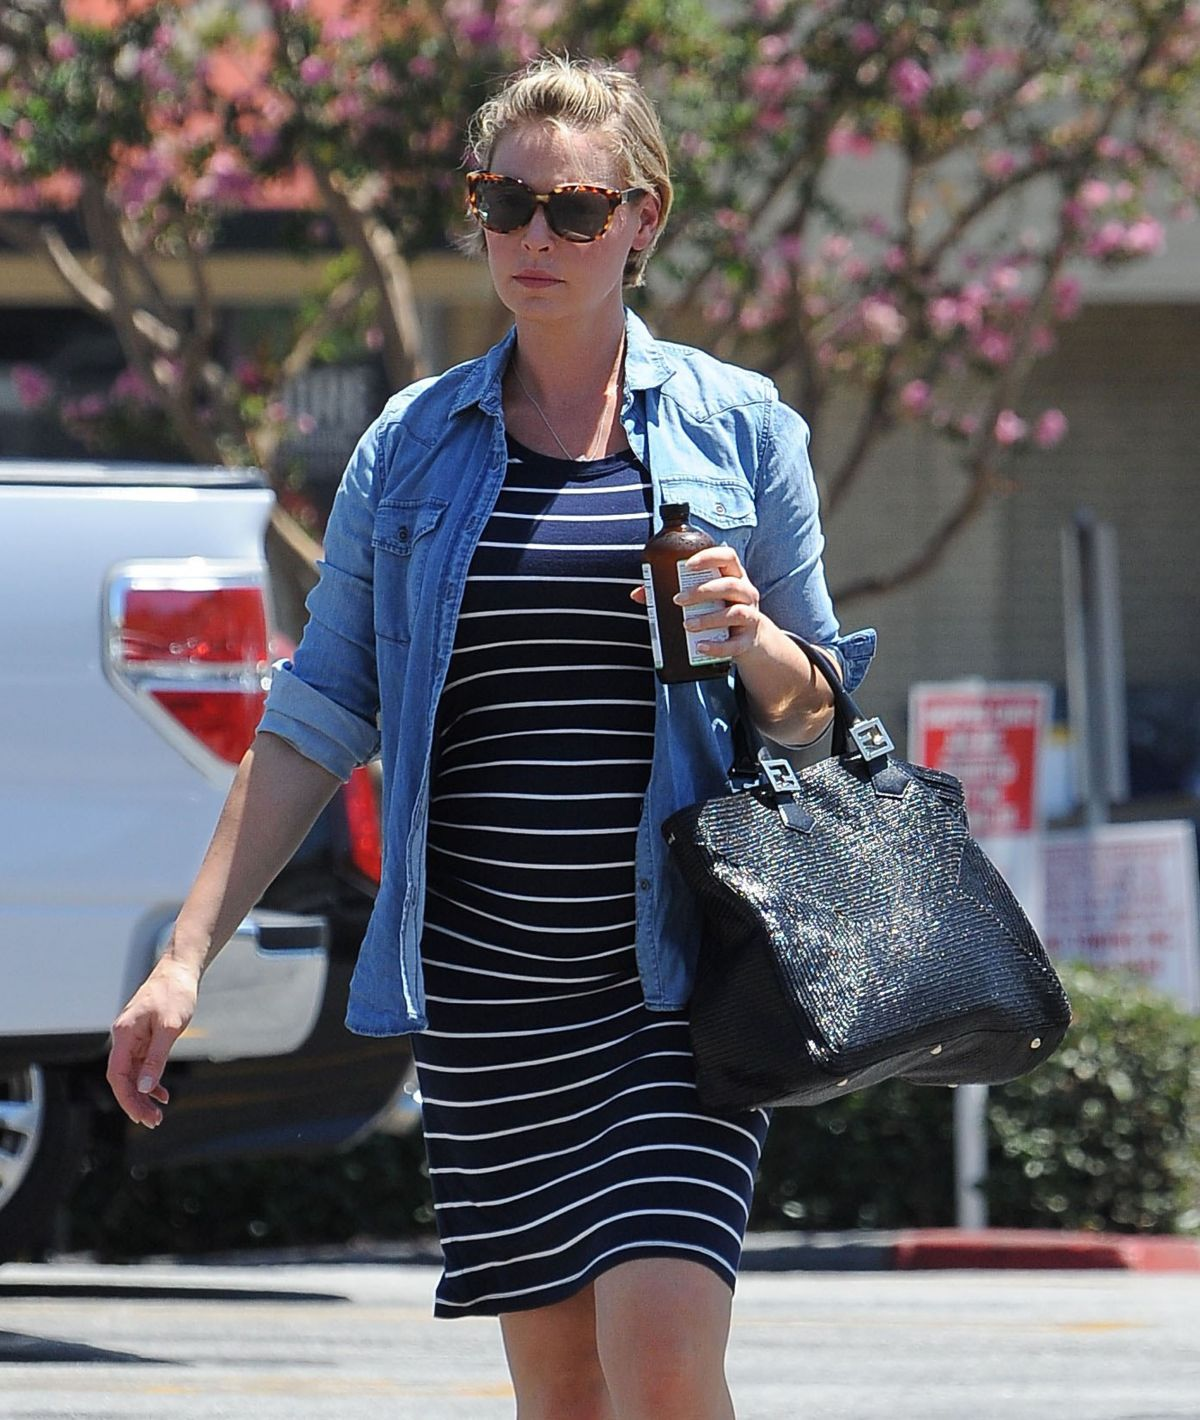 Pregnant KATHERINE HEIGL Out In Los Angeles 08/15/2016 ...